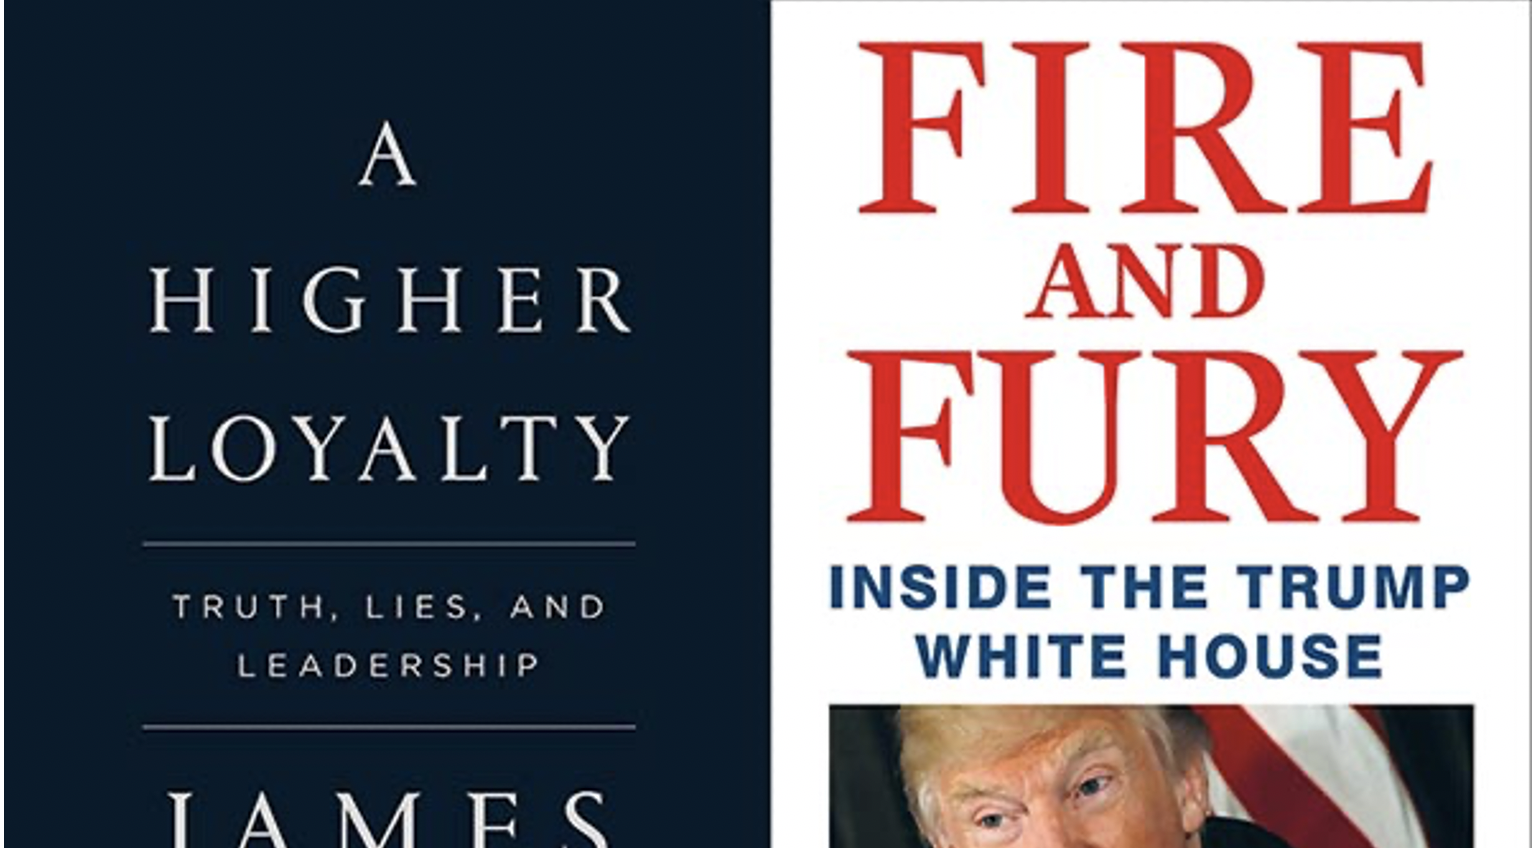 A graphic displaying two book covers: A Higher Loyalty by James Comey, and Fire and Fury by Michael Wolff